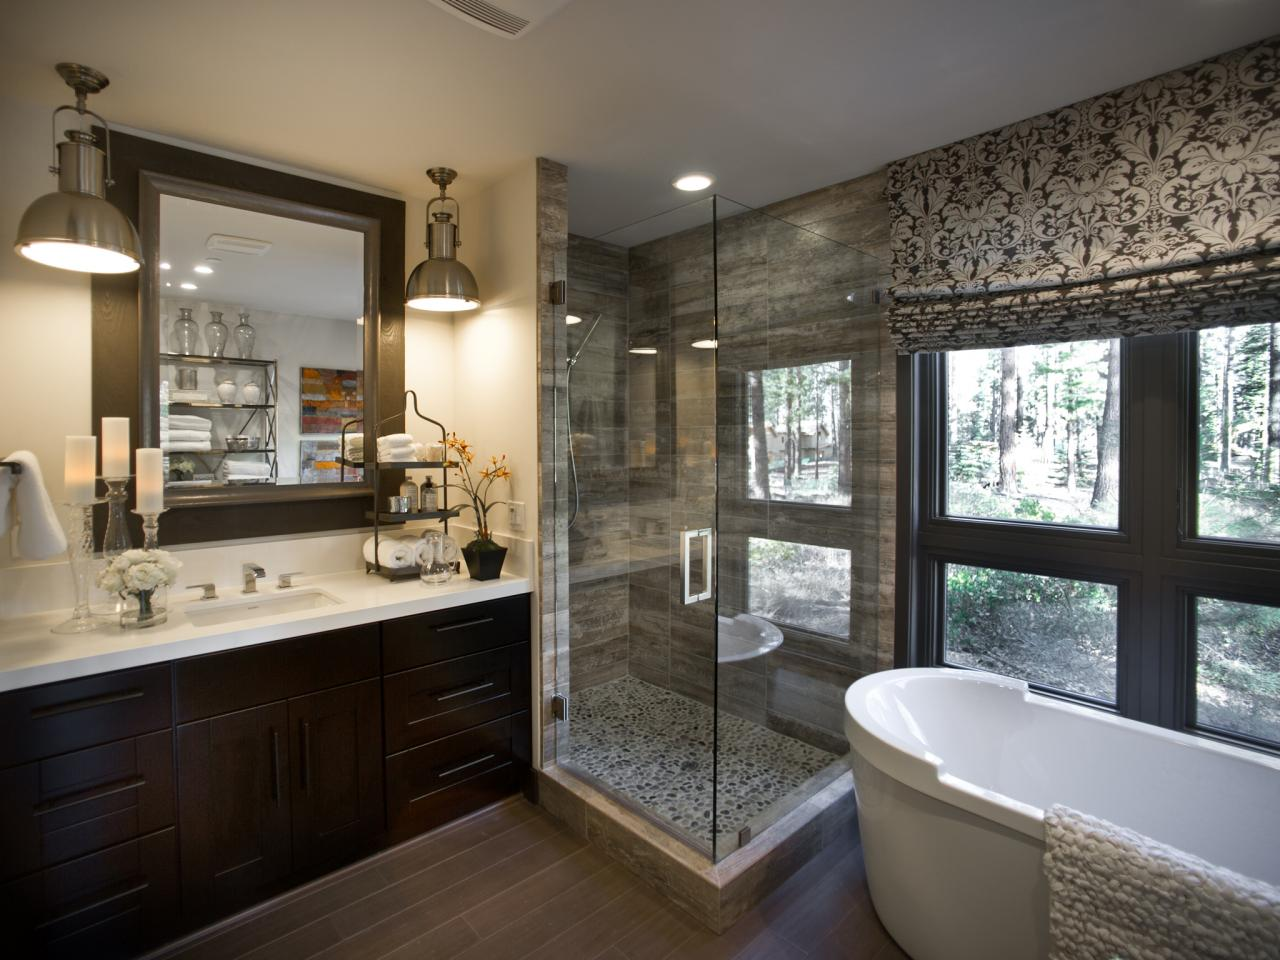 Hgtv dream home 2014 master bathroom pictures and video Hgtv bathroom remodel pictures